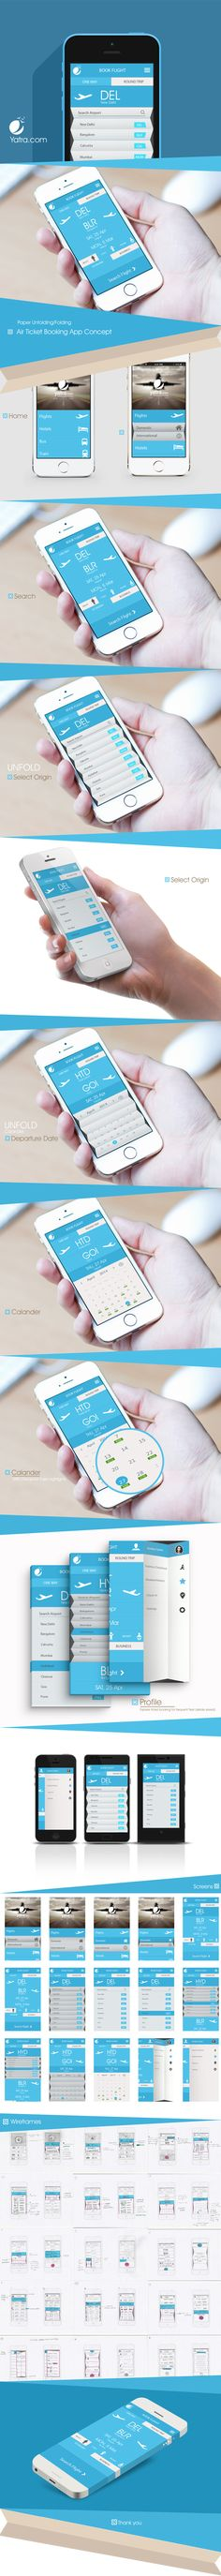 Air ticket booking App UX/UI Concept by Sansar Verma, via Behance